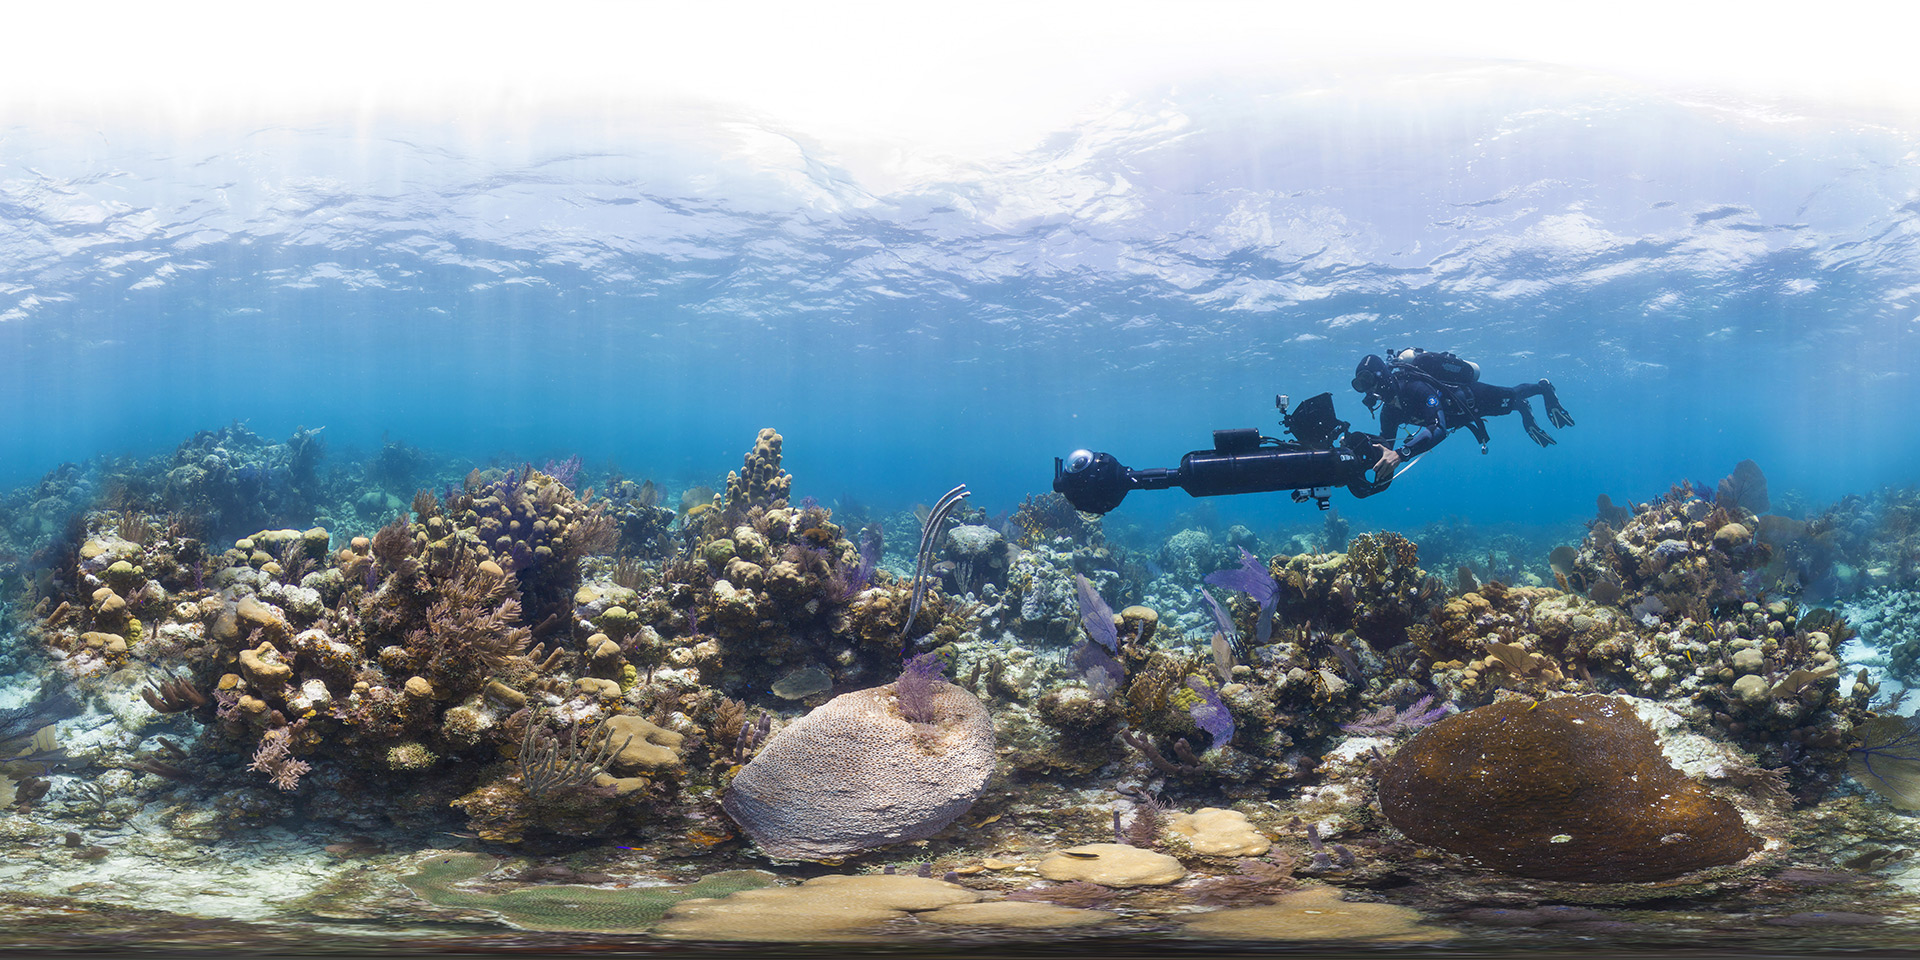 Glovers-Reef-Photo-by-XL-Catlin-Seaview-Survey---The-Ocean-Agency---Christophe-Bailhache.jpg